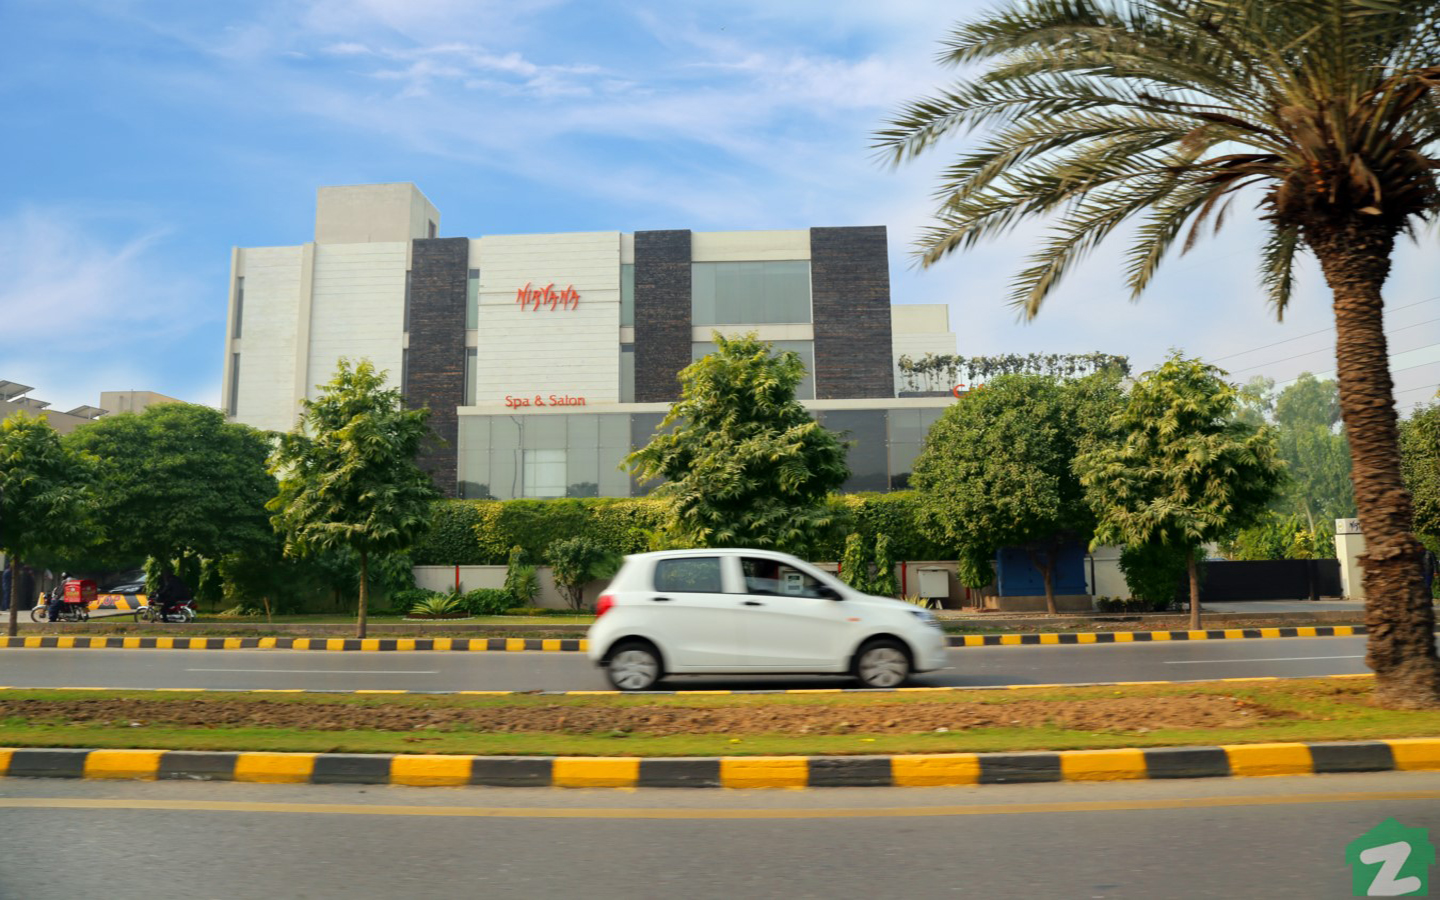 Nirvana Salon and Spa in DHA, Lahore